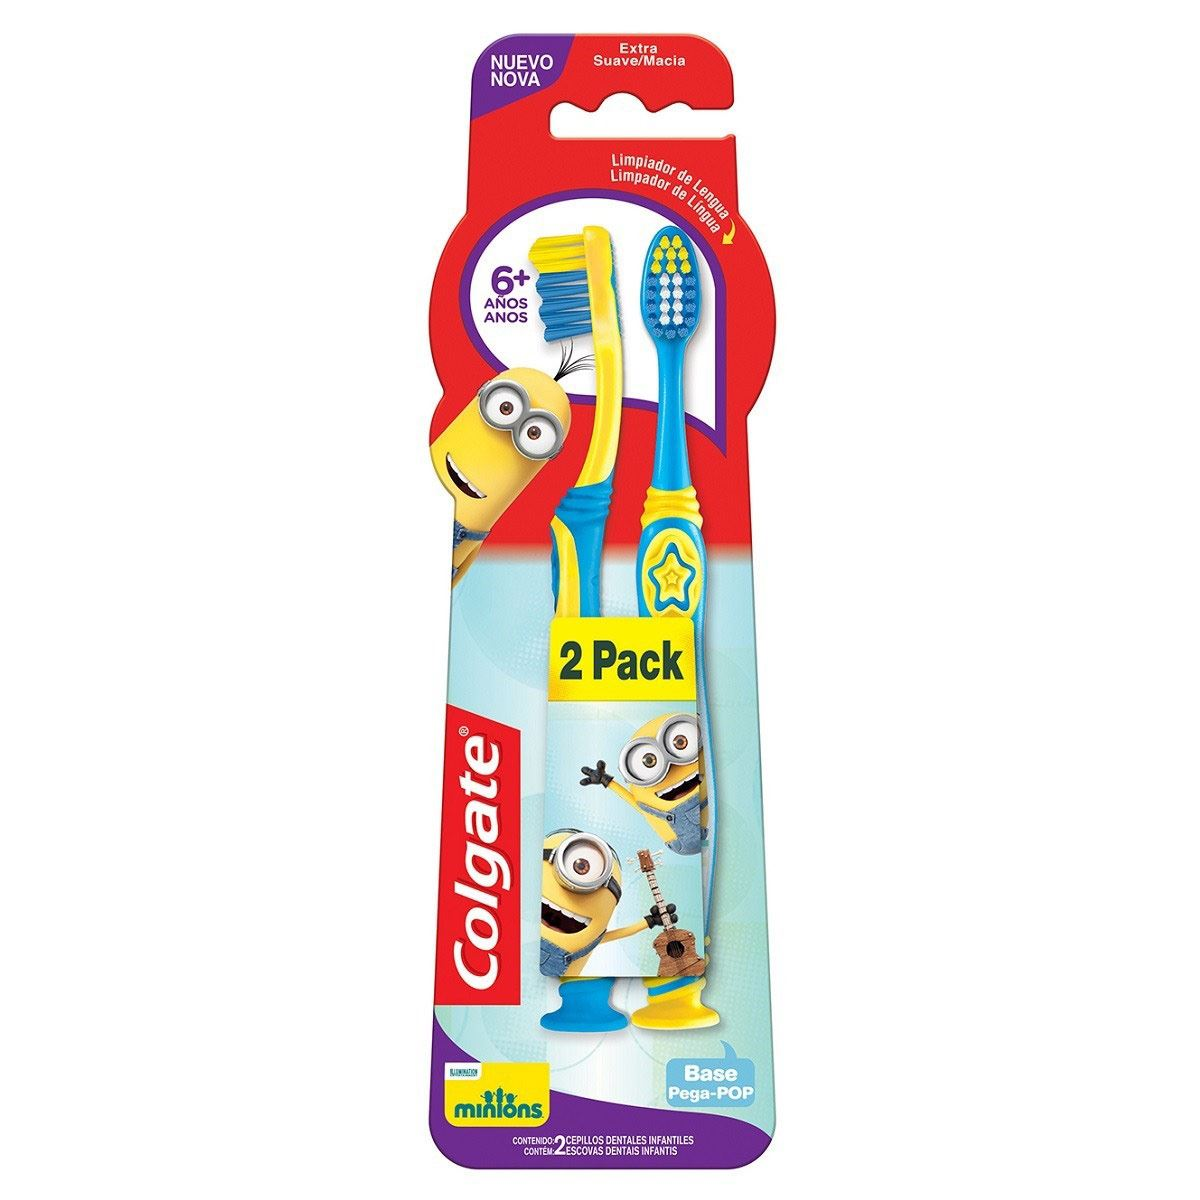 Cepillo Dental Colgate Minions 2 pz